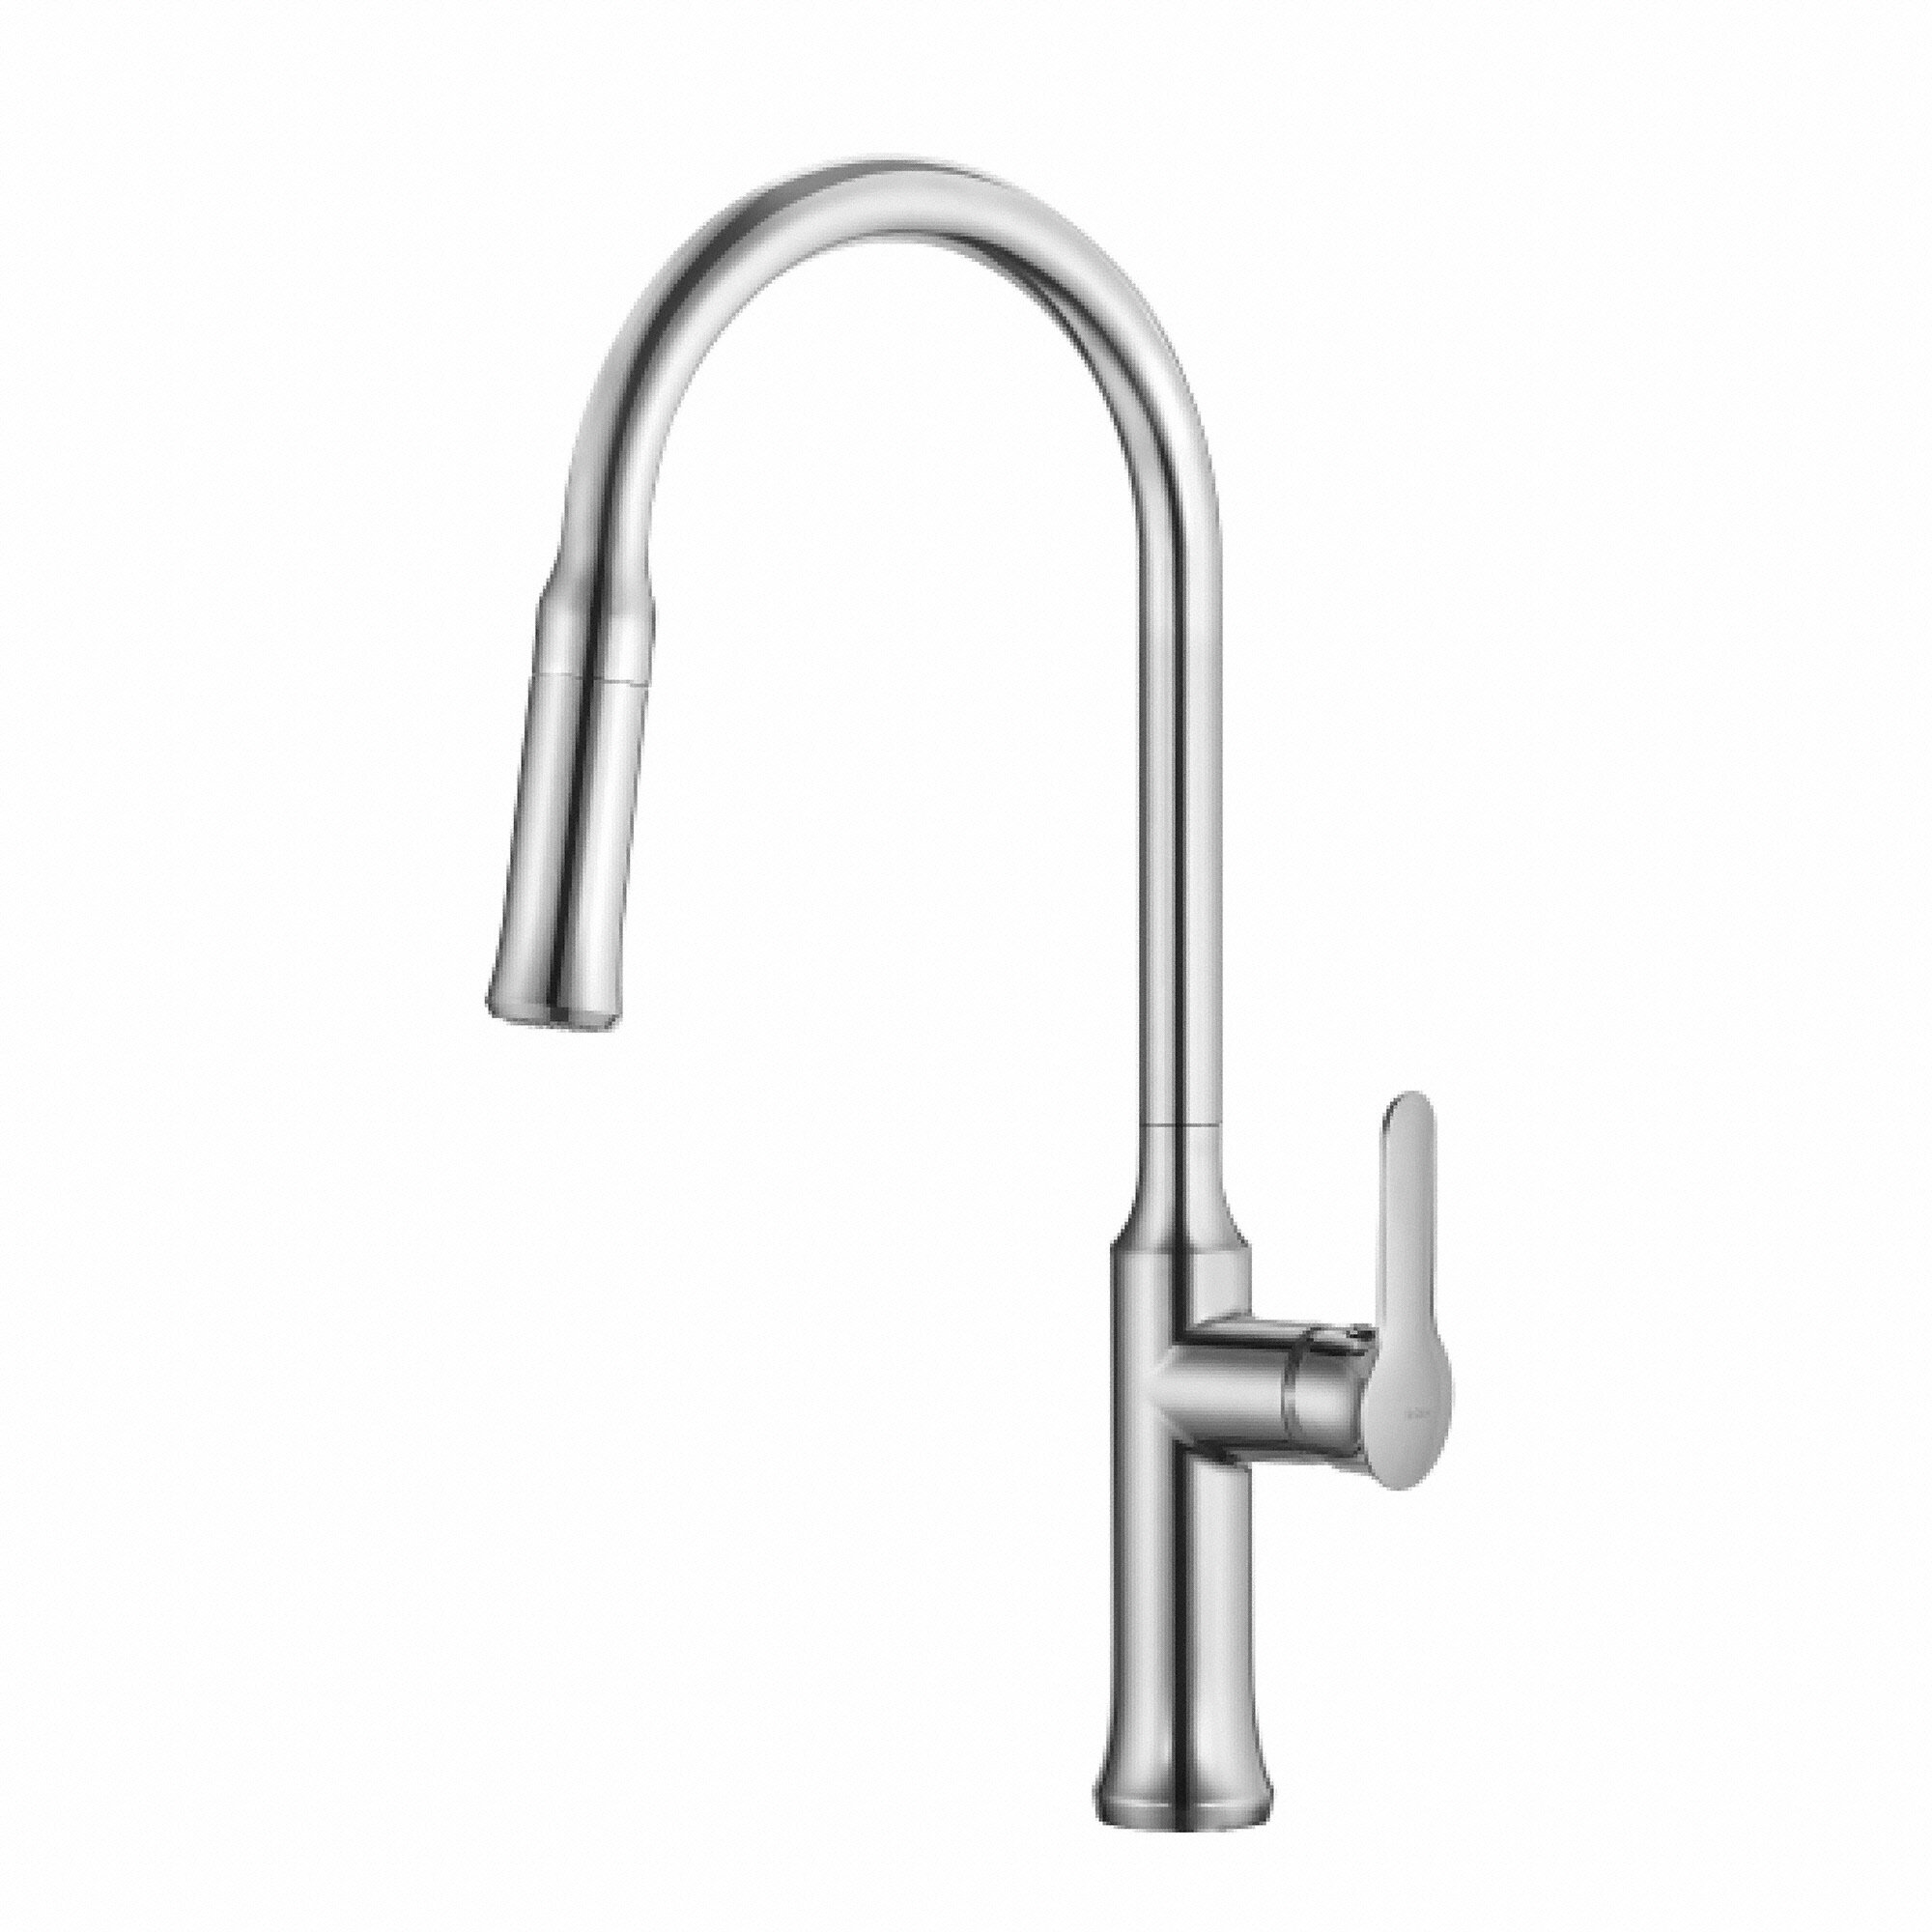 down pull handle kraus nola home improvement with kitchen wayfair out faucets faucet gooseneck reviews single pdx spray